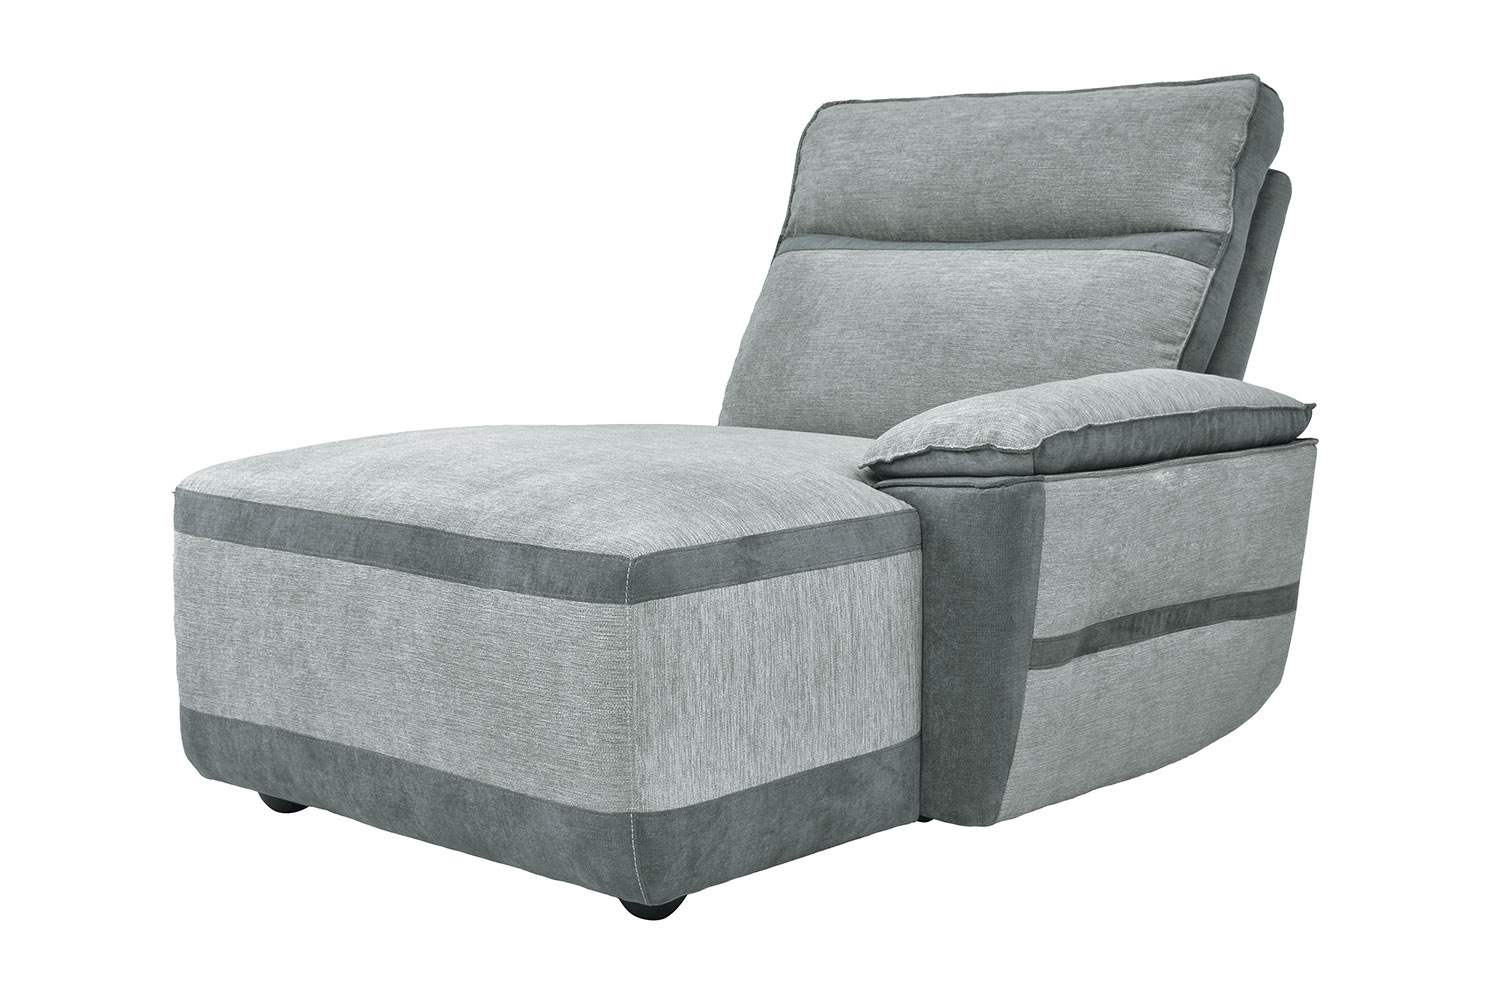 Homelegance Hedera Right Side Chaise - Gray